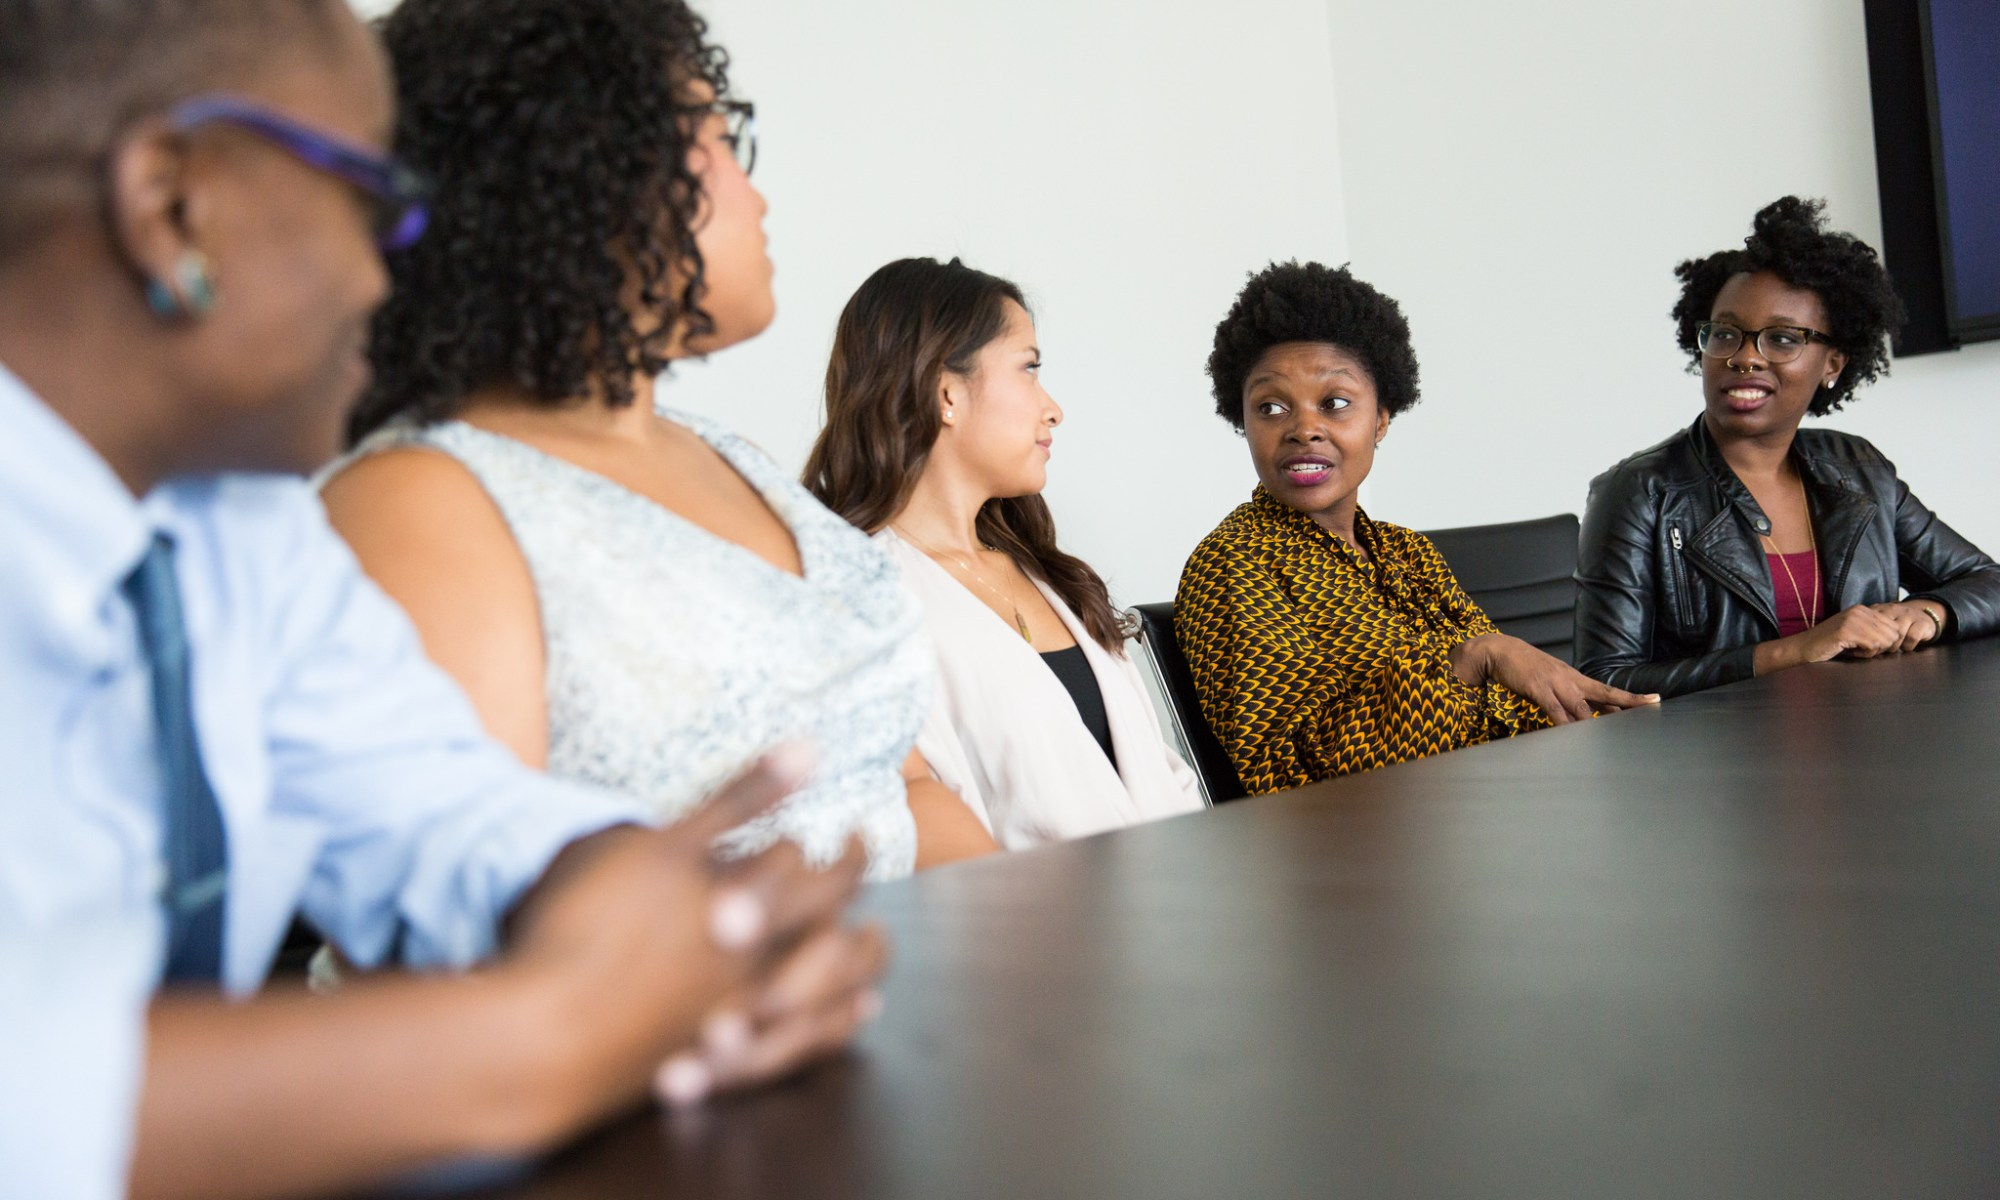 Black women in tech gather for discussion